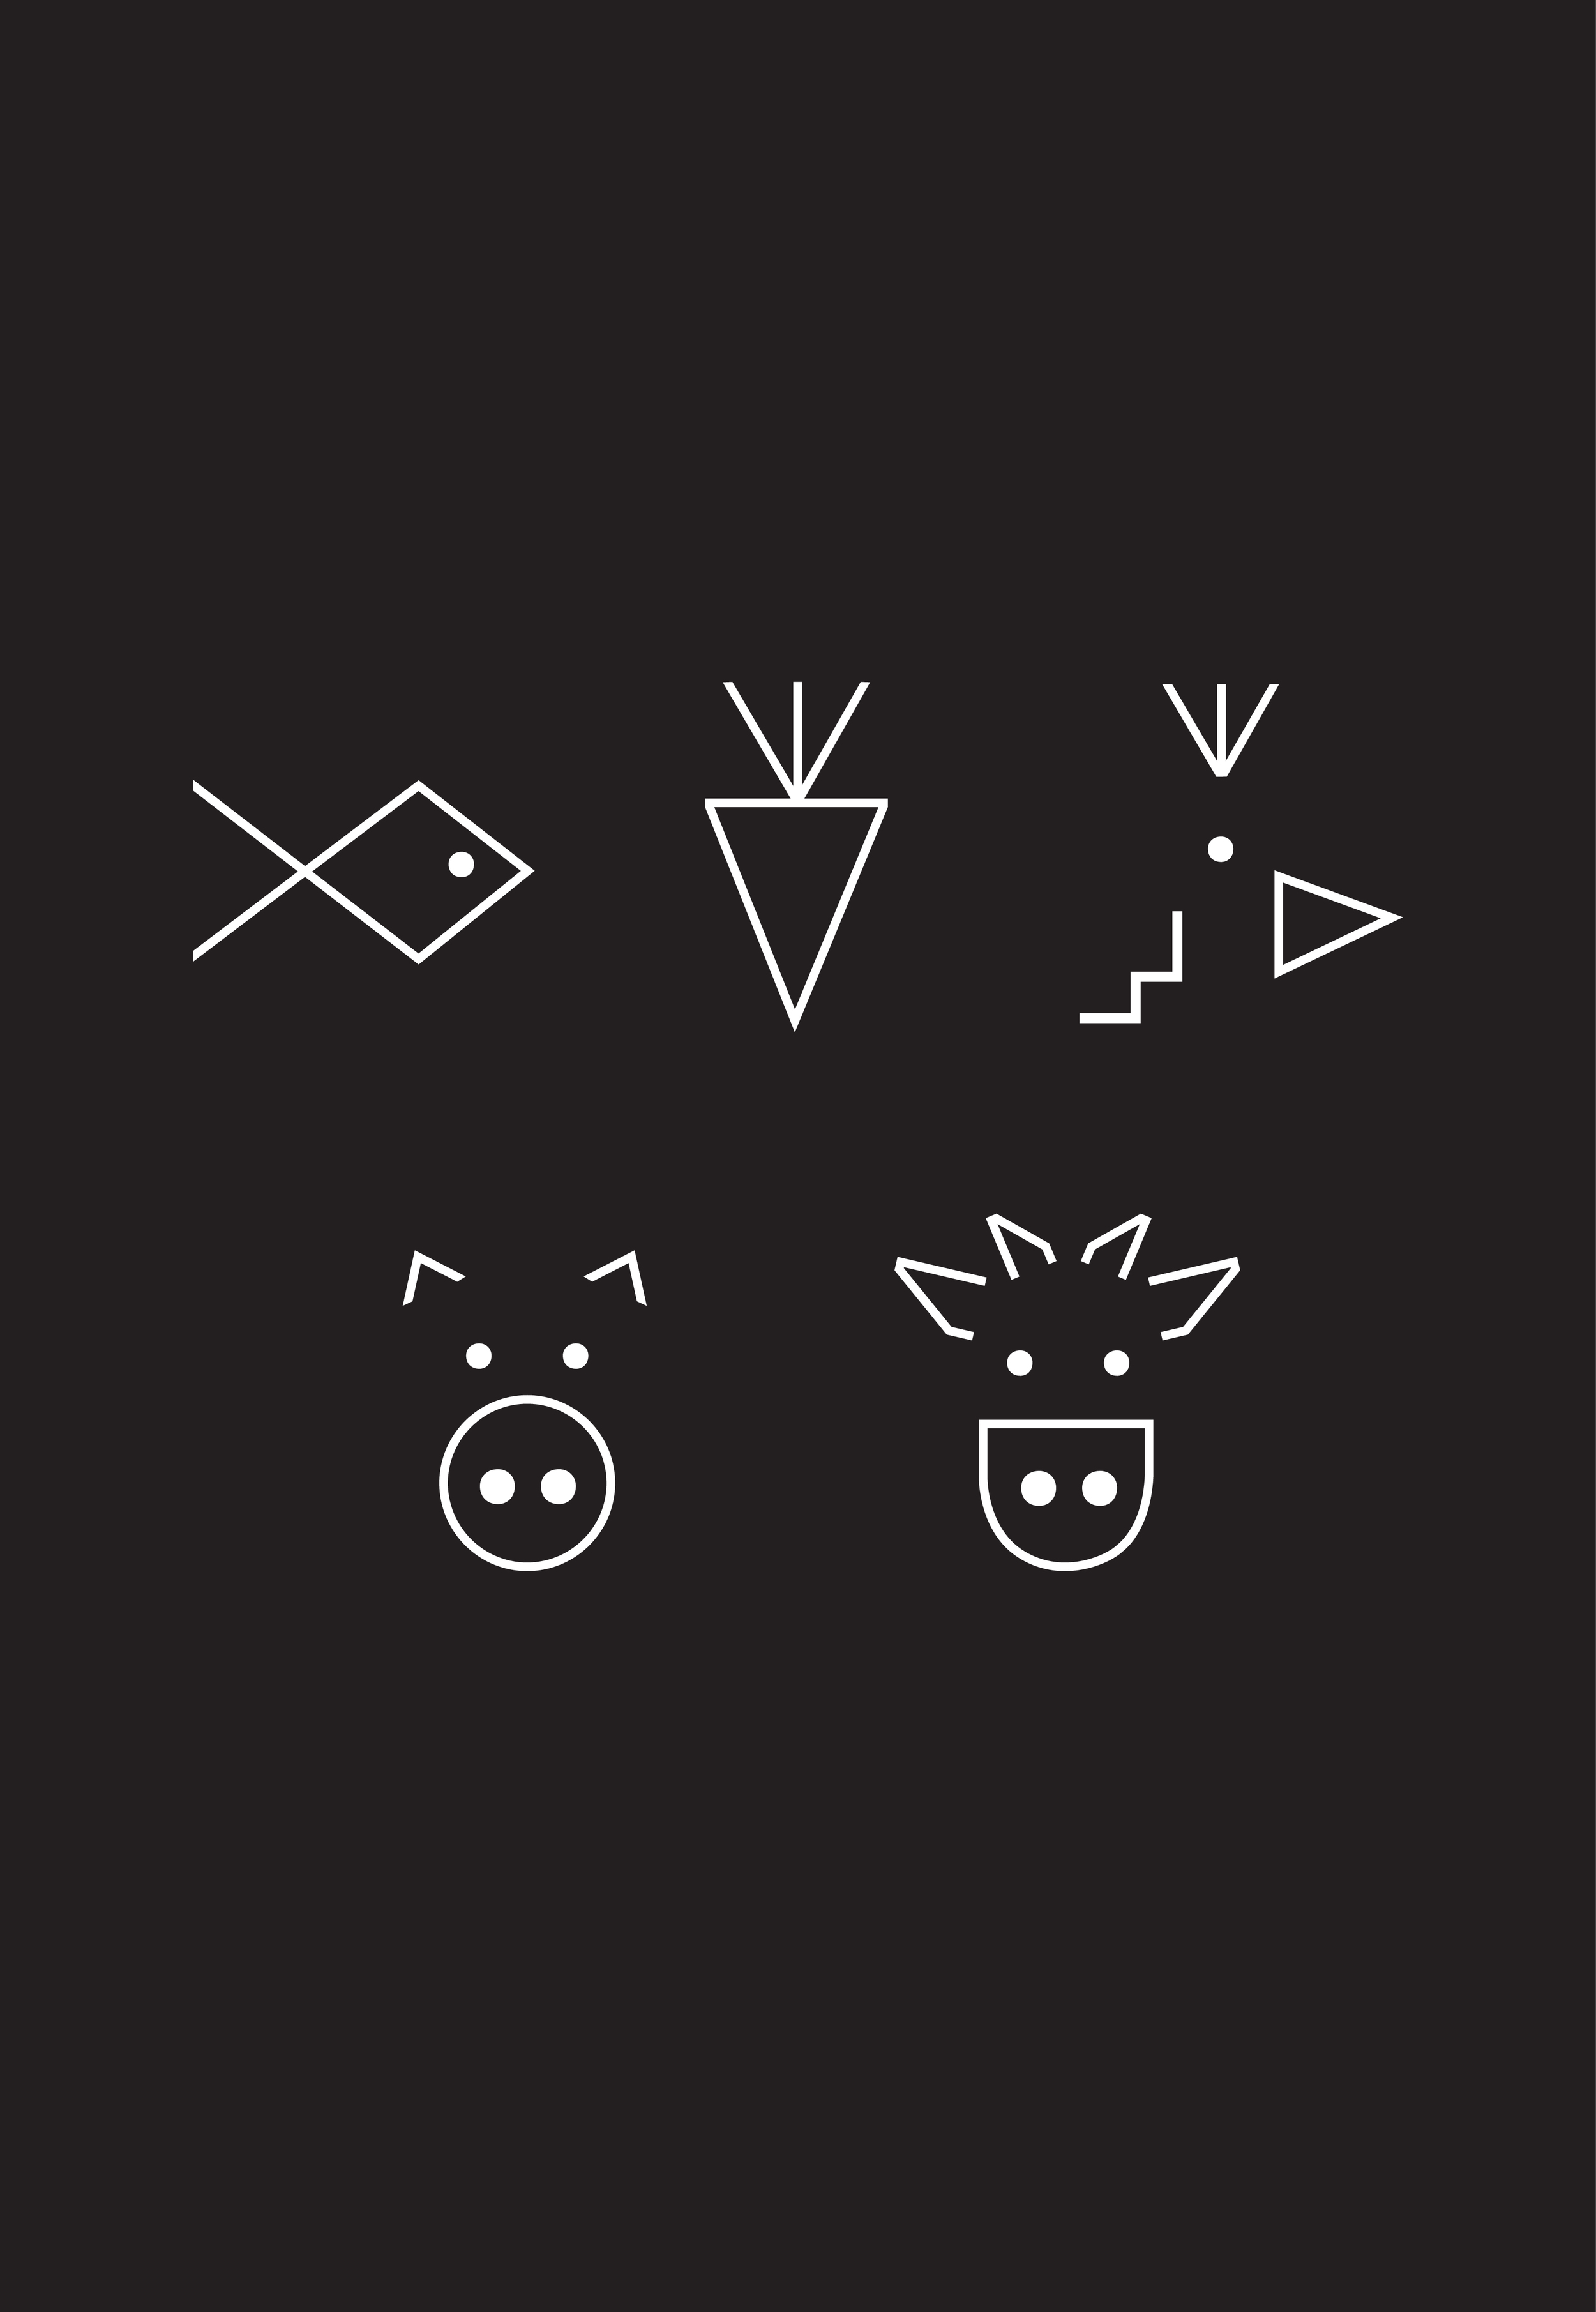 Simple icons of animals designed for packaging design of Paæo wrap